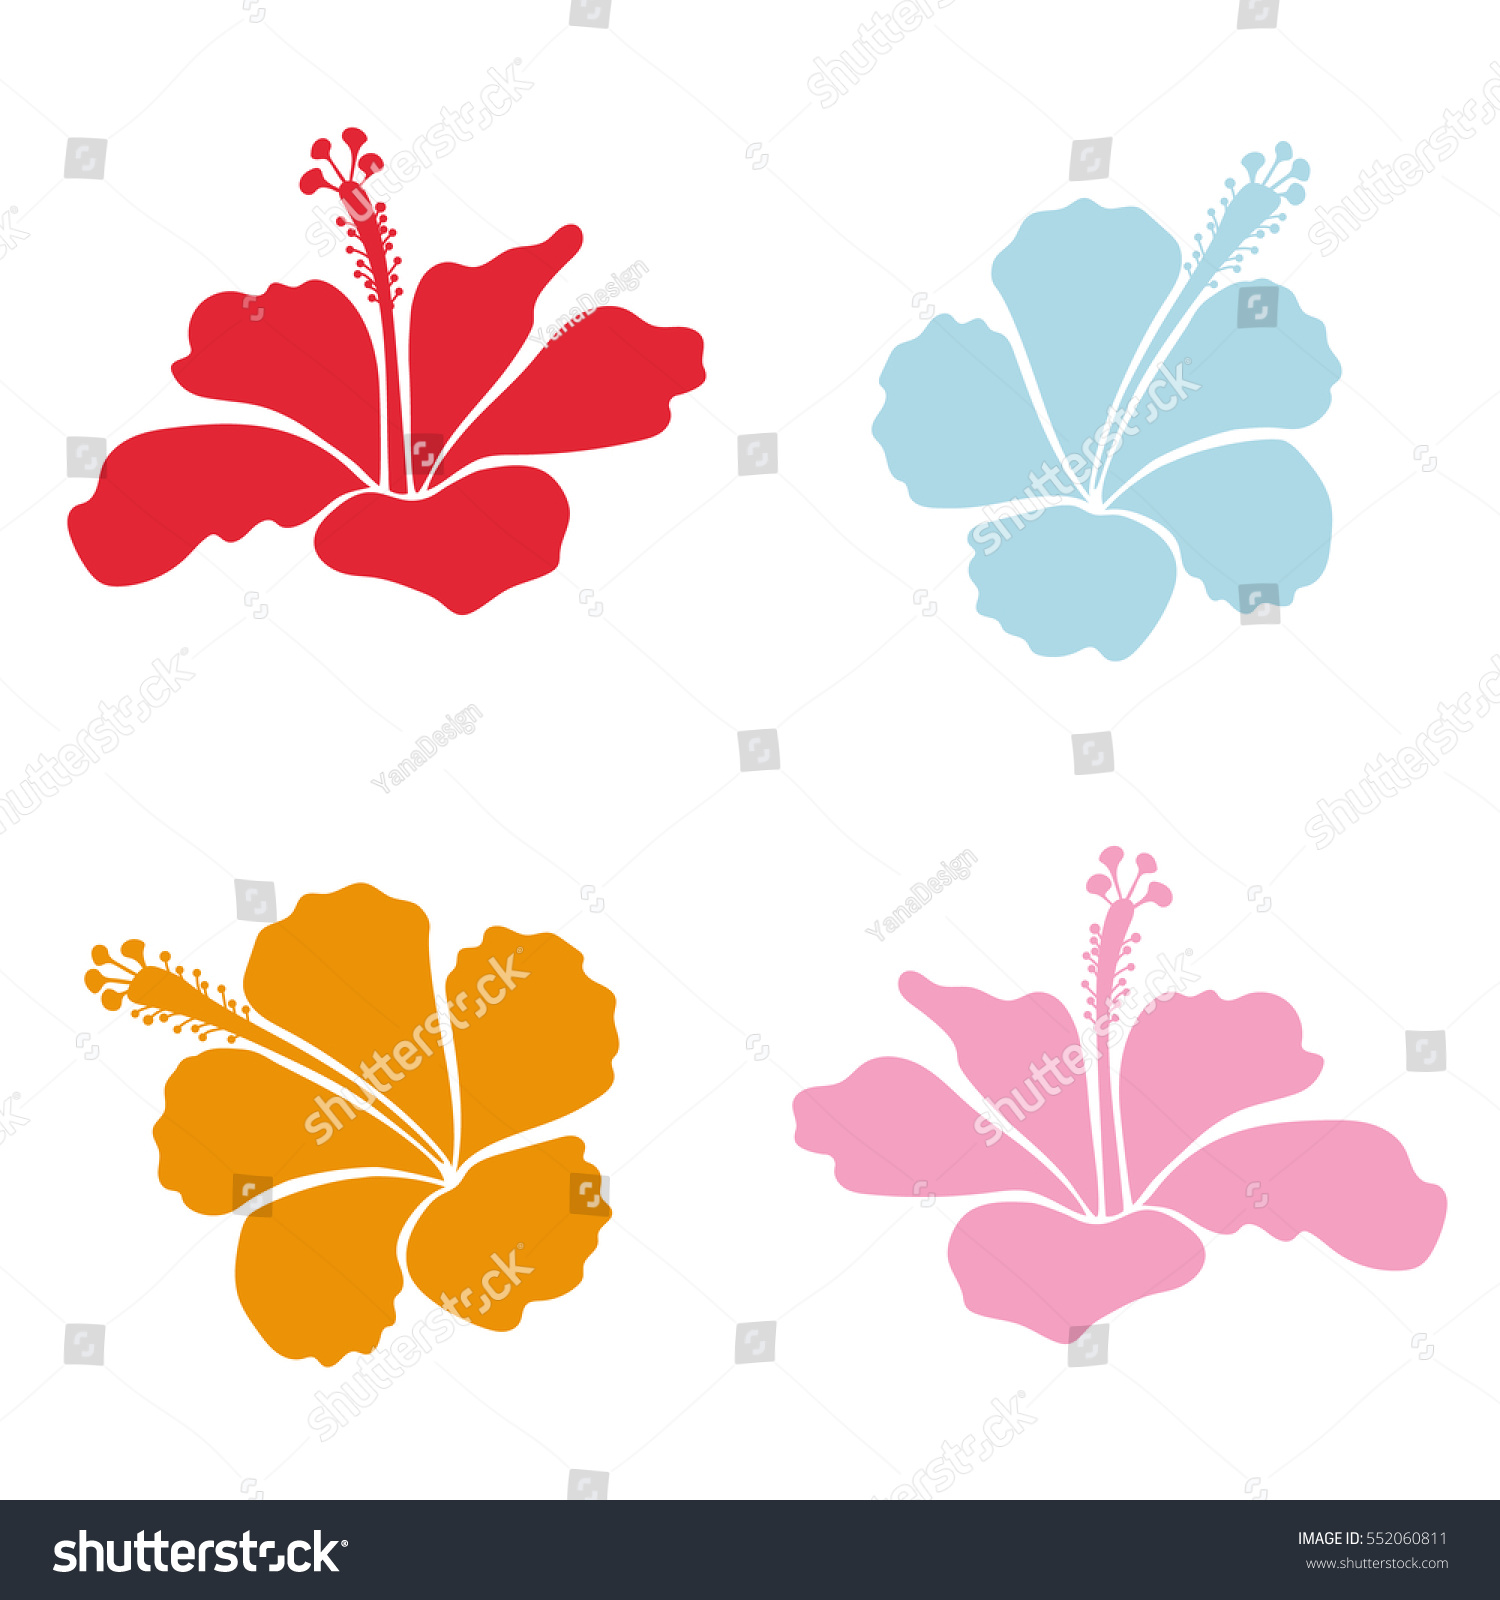 Vector collection hawaiian aloha shirt hibiscus stock vector vector collection of hawaiian aloha shirt hibiscus flowers in pink yellow and red colors izmirmasajfo Gallery